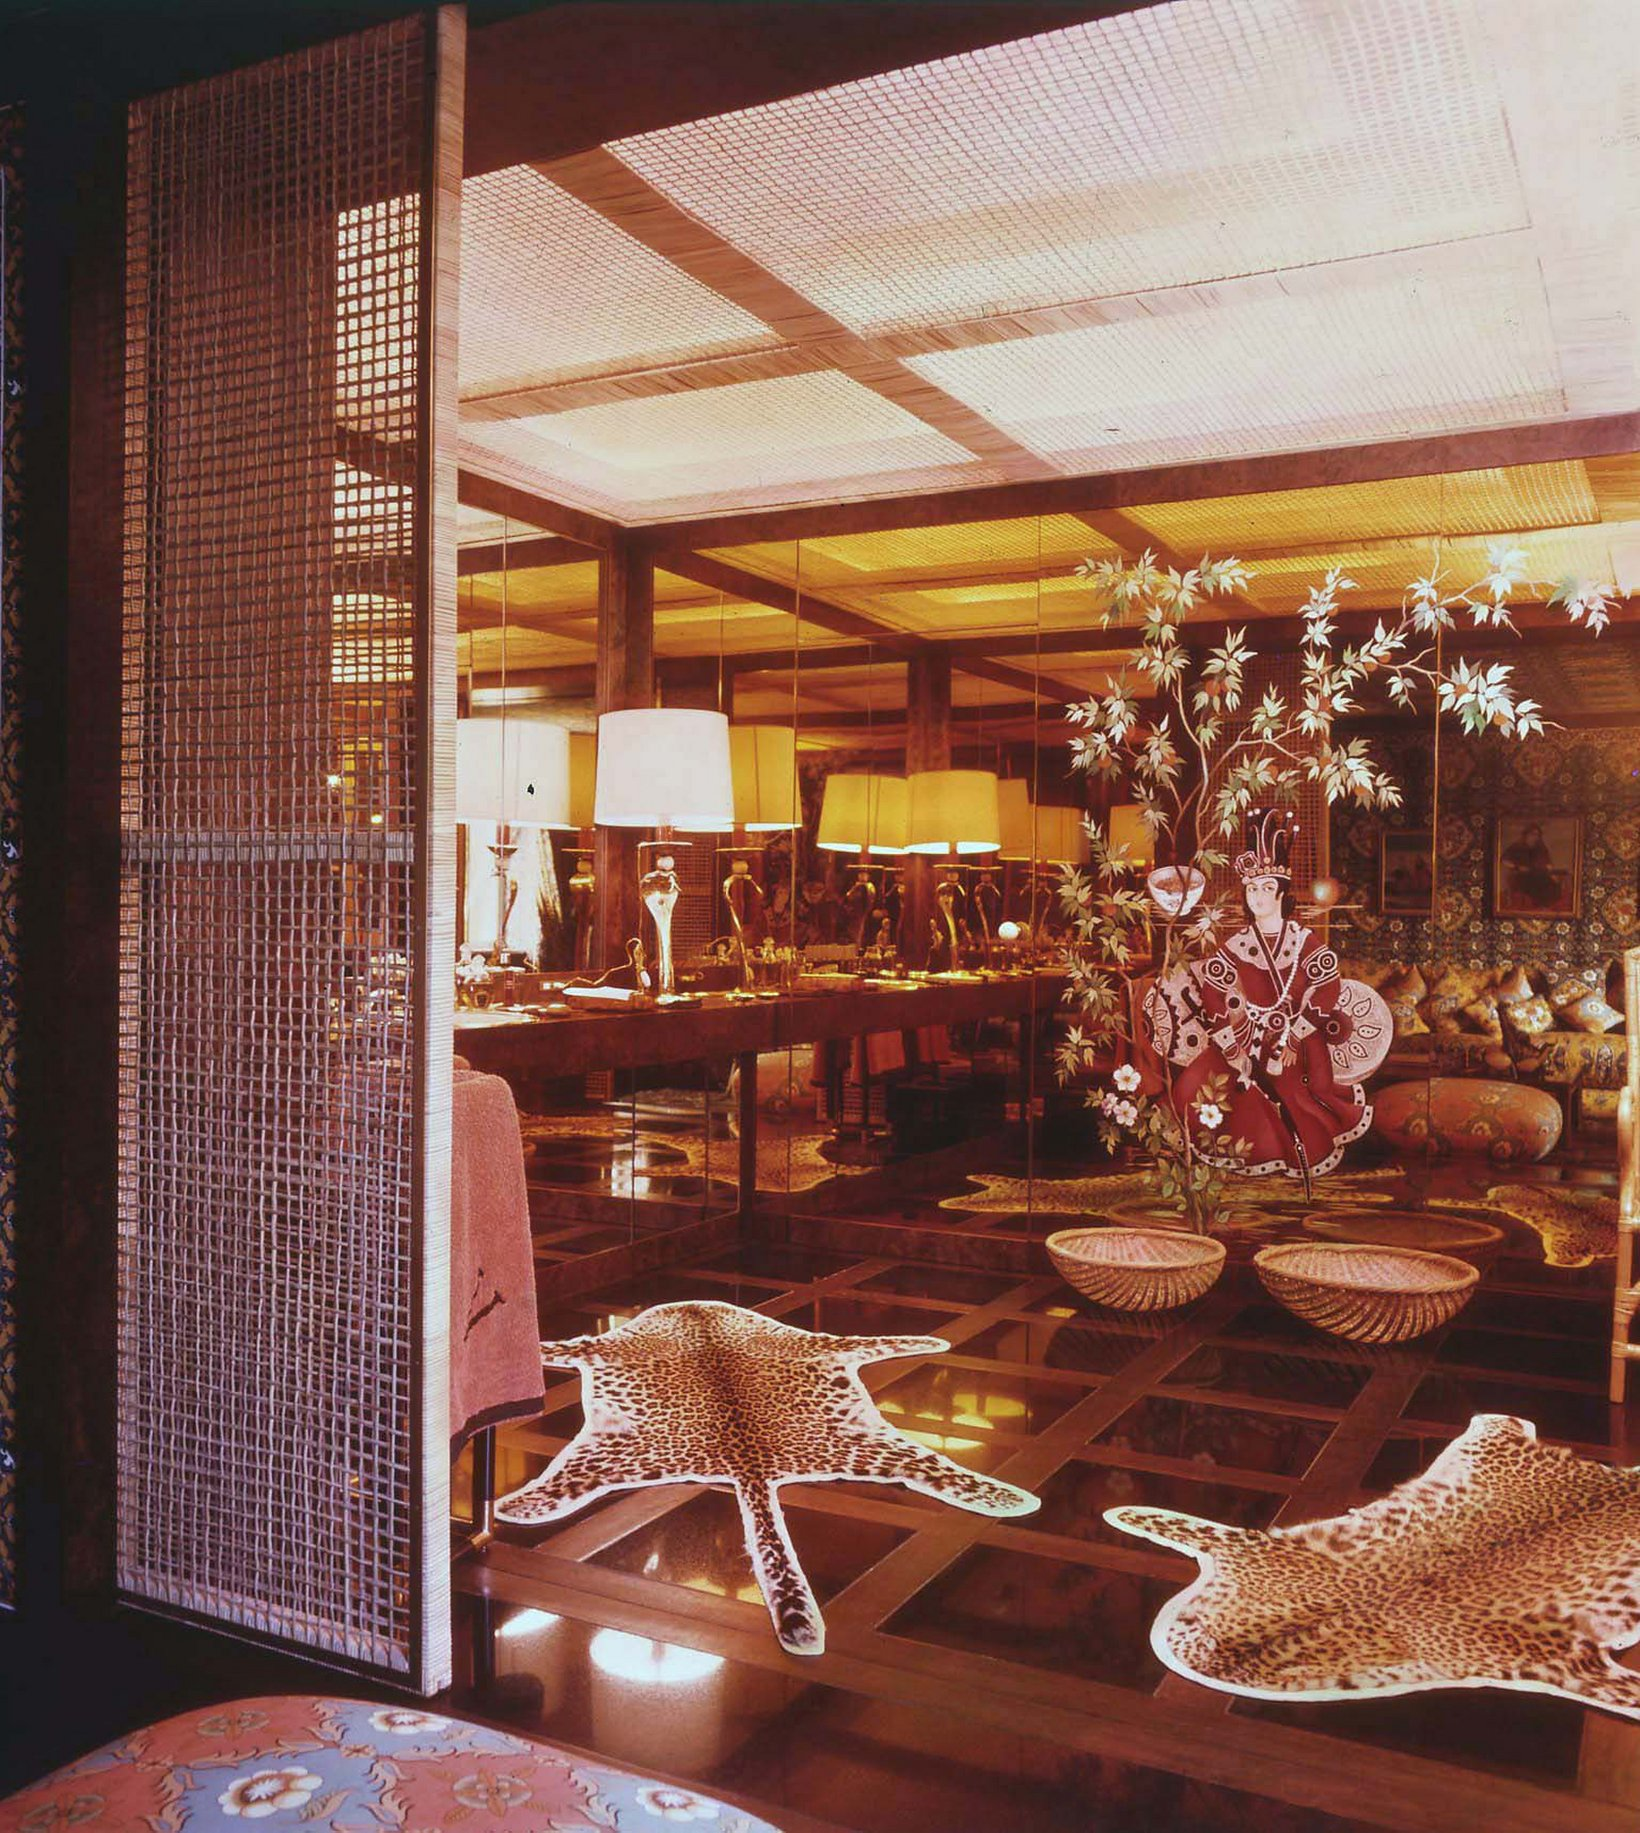 Sao Schlumberger paris home 1974 leopard print washroom bathroom master bath asian mirrored chome inspired gold mirror rug shop room ideas celebrity tour ideas